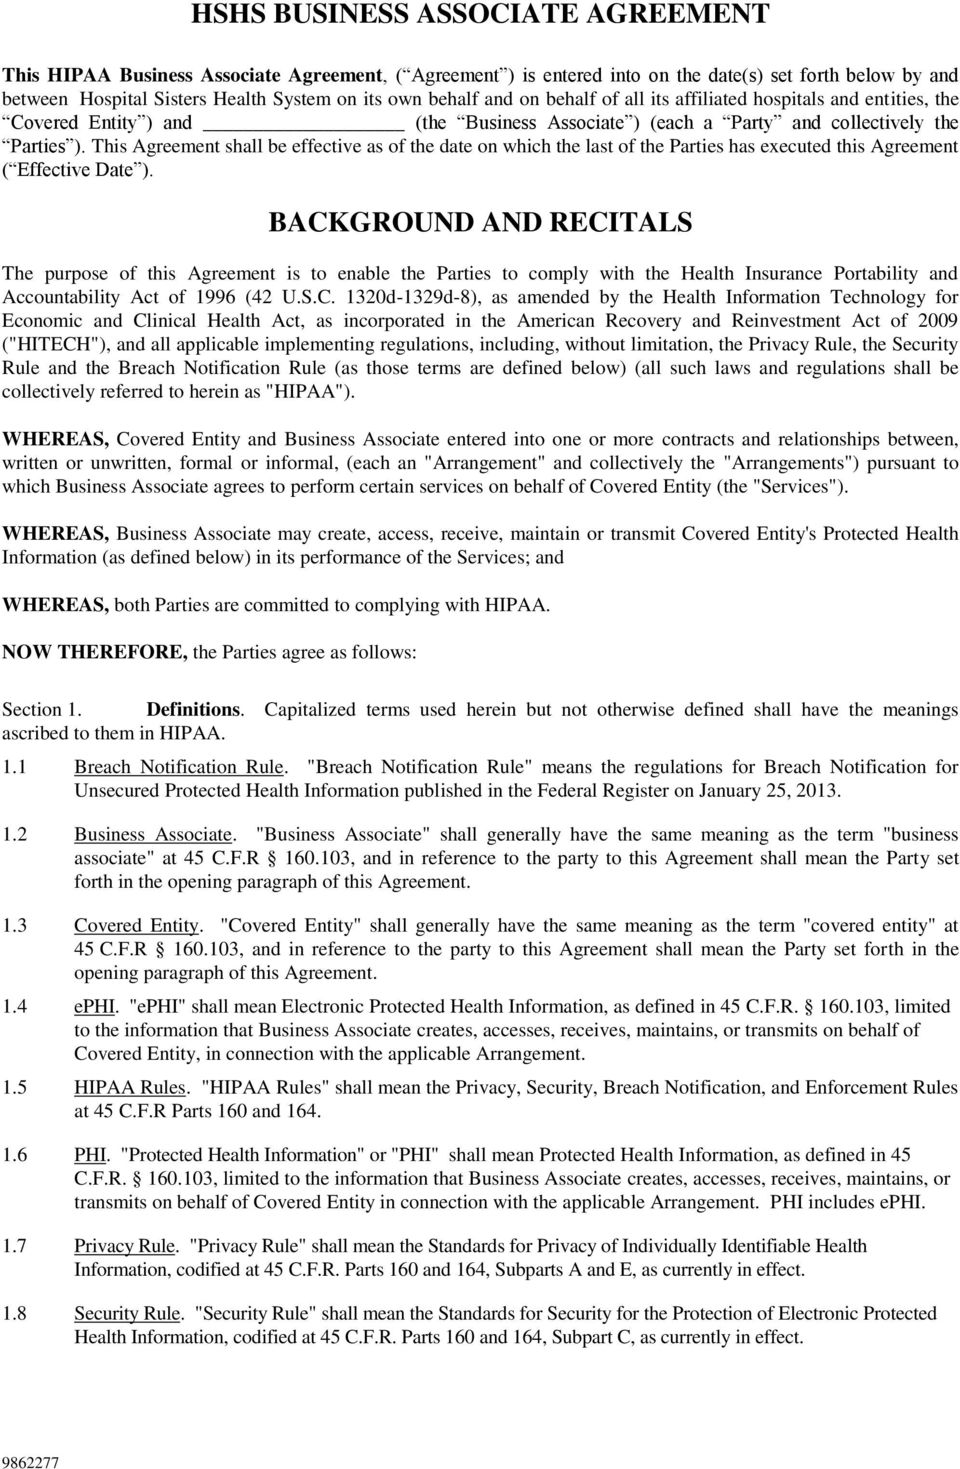 Hshs Business Associate Agreement Background And Recitals Pdf